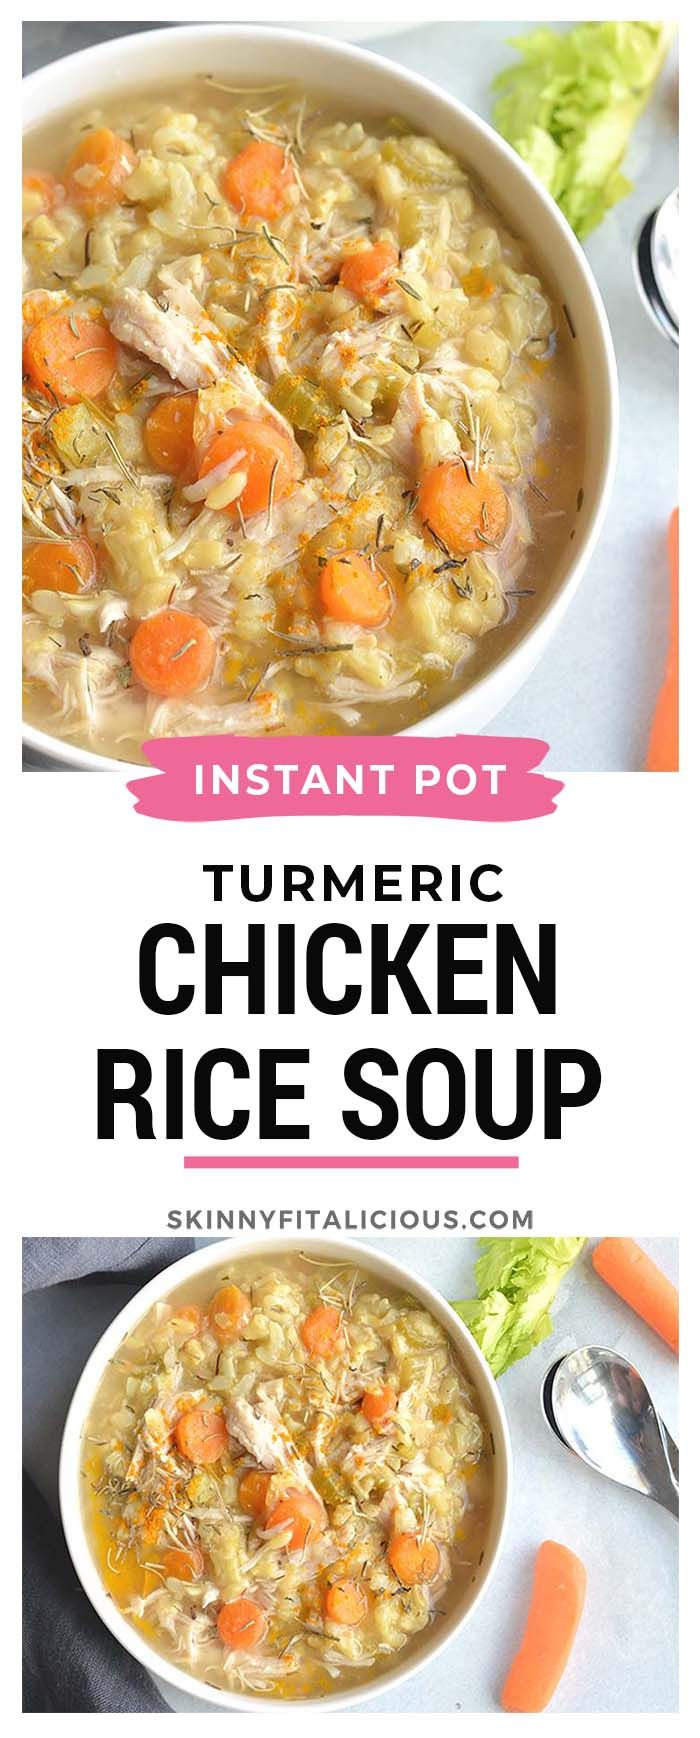 Instant Pot Turmeric Chicken Rice Soup #antiinflamatoryrecipes